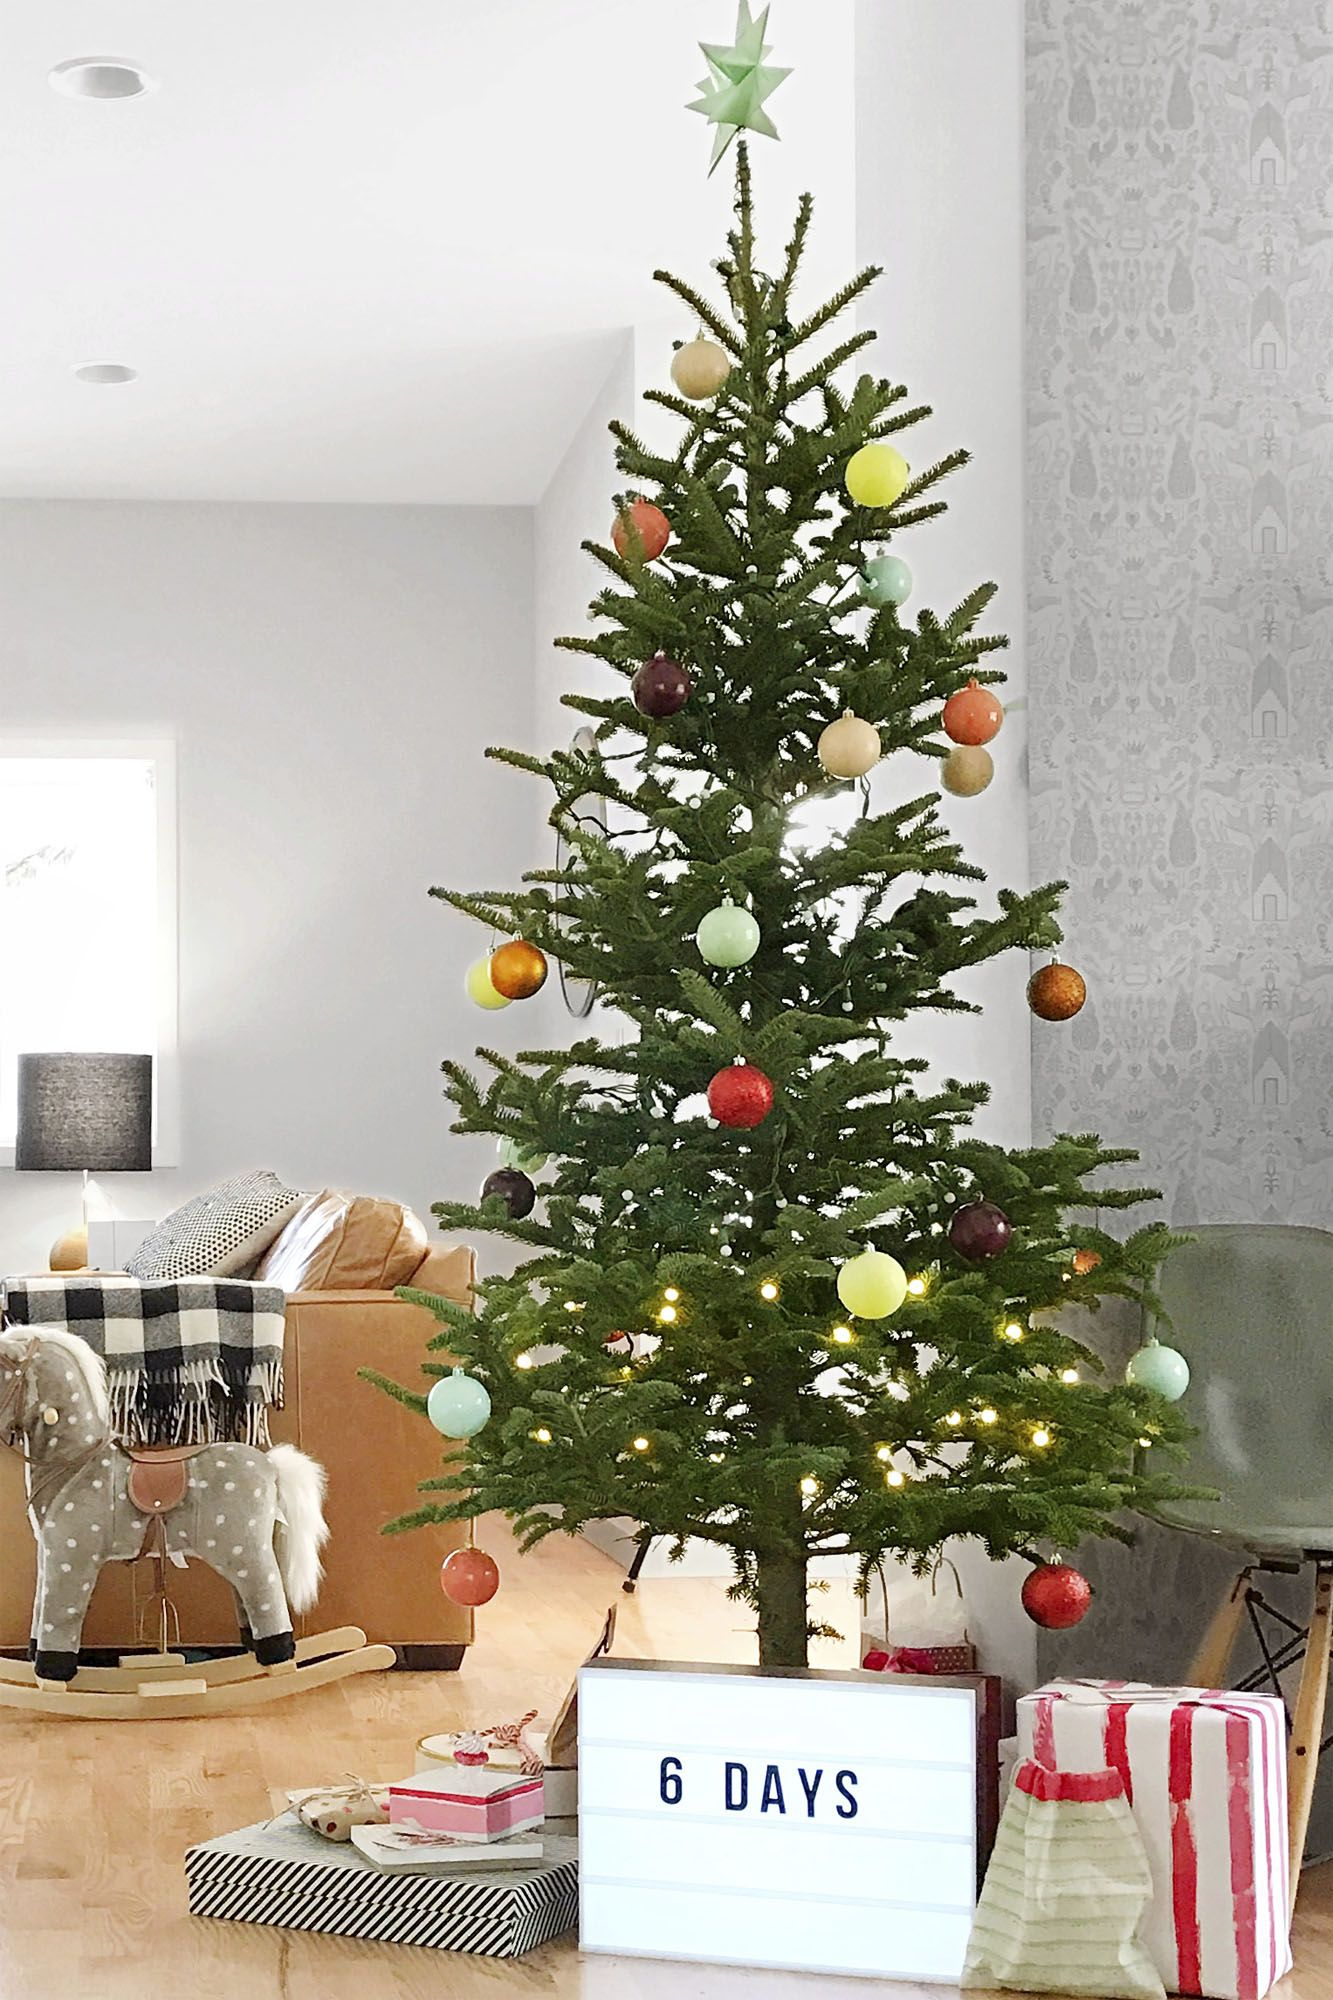 50 Unique Christmas Tree Decoration Ideas And Themes 2020